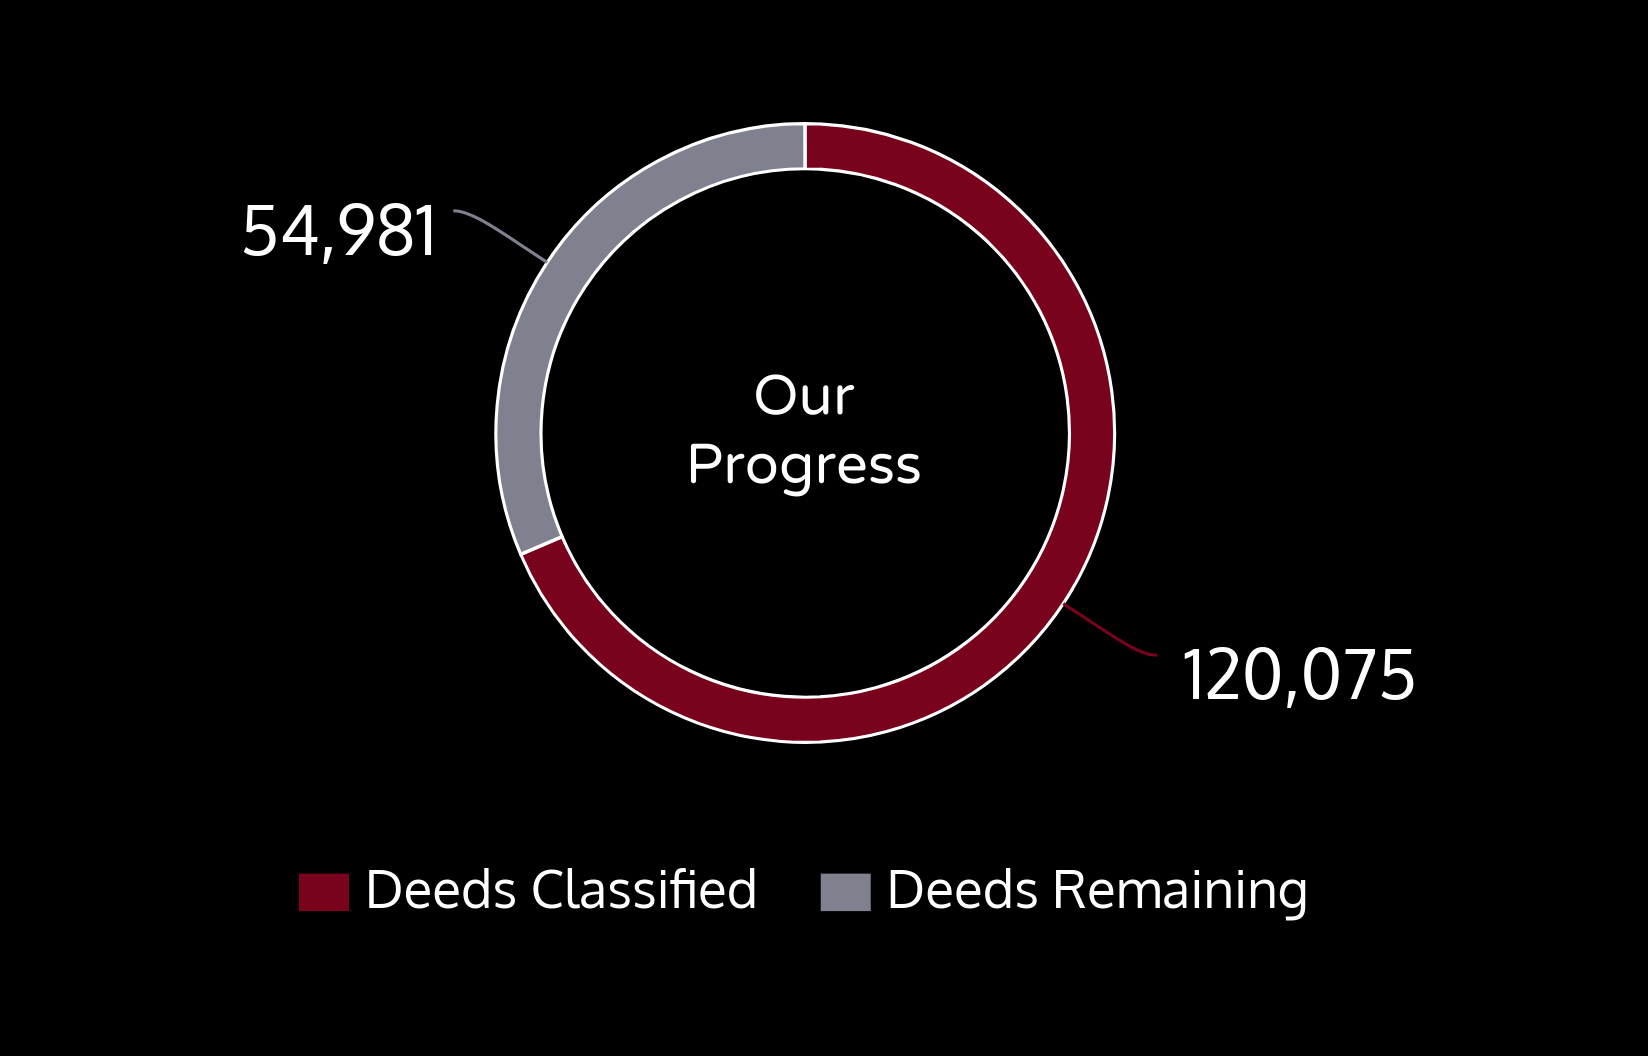 This chart shows our progress. 120,075 deeds are transcribed and 54,981 are remaining.